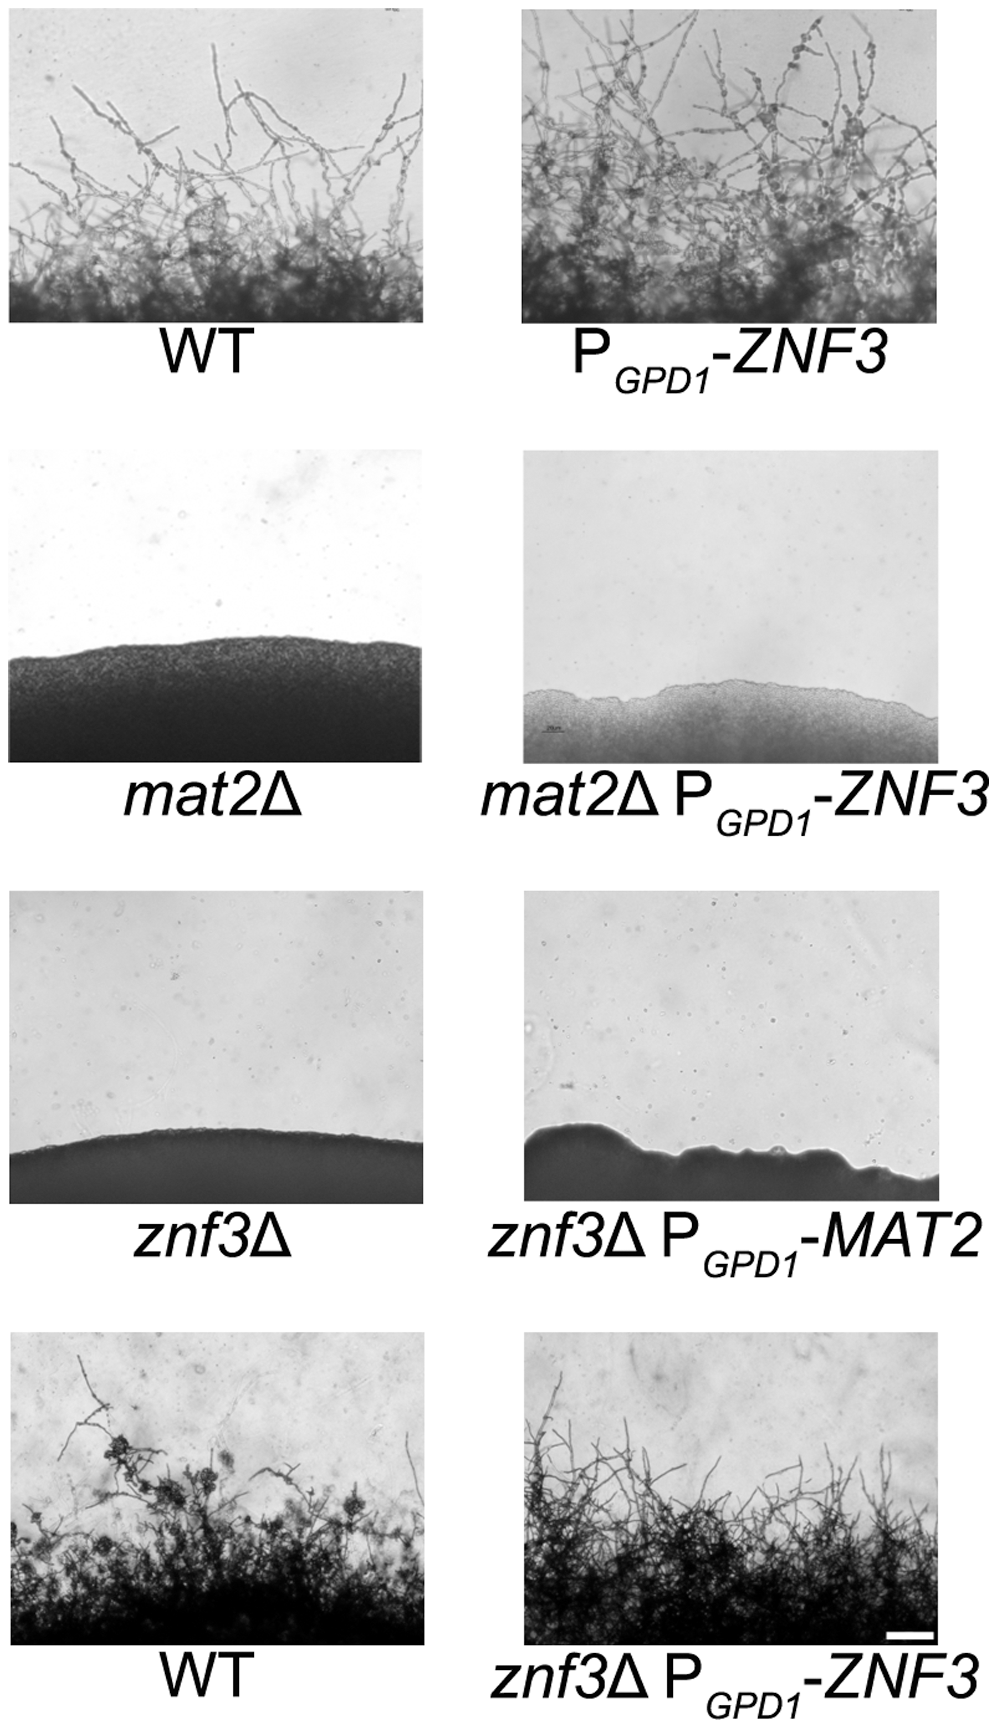 Znf3 is not a transcriptional target of the MAPK signaling cascade or Mat2.